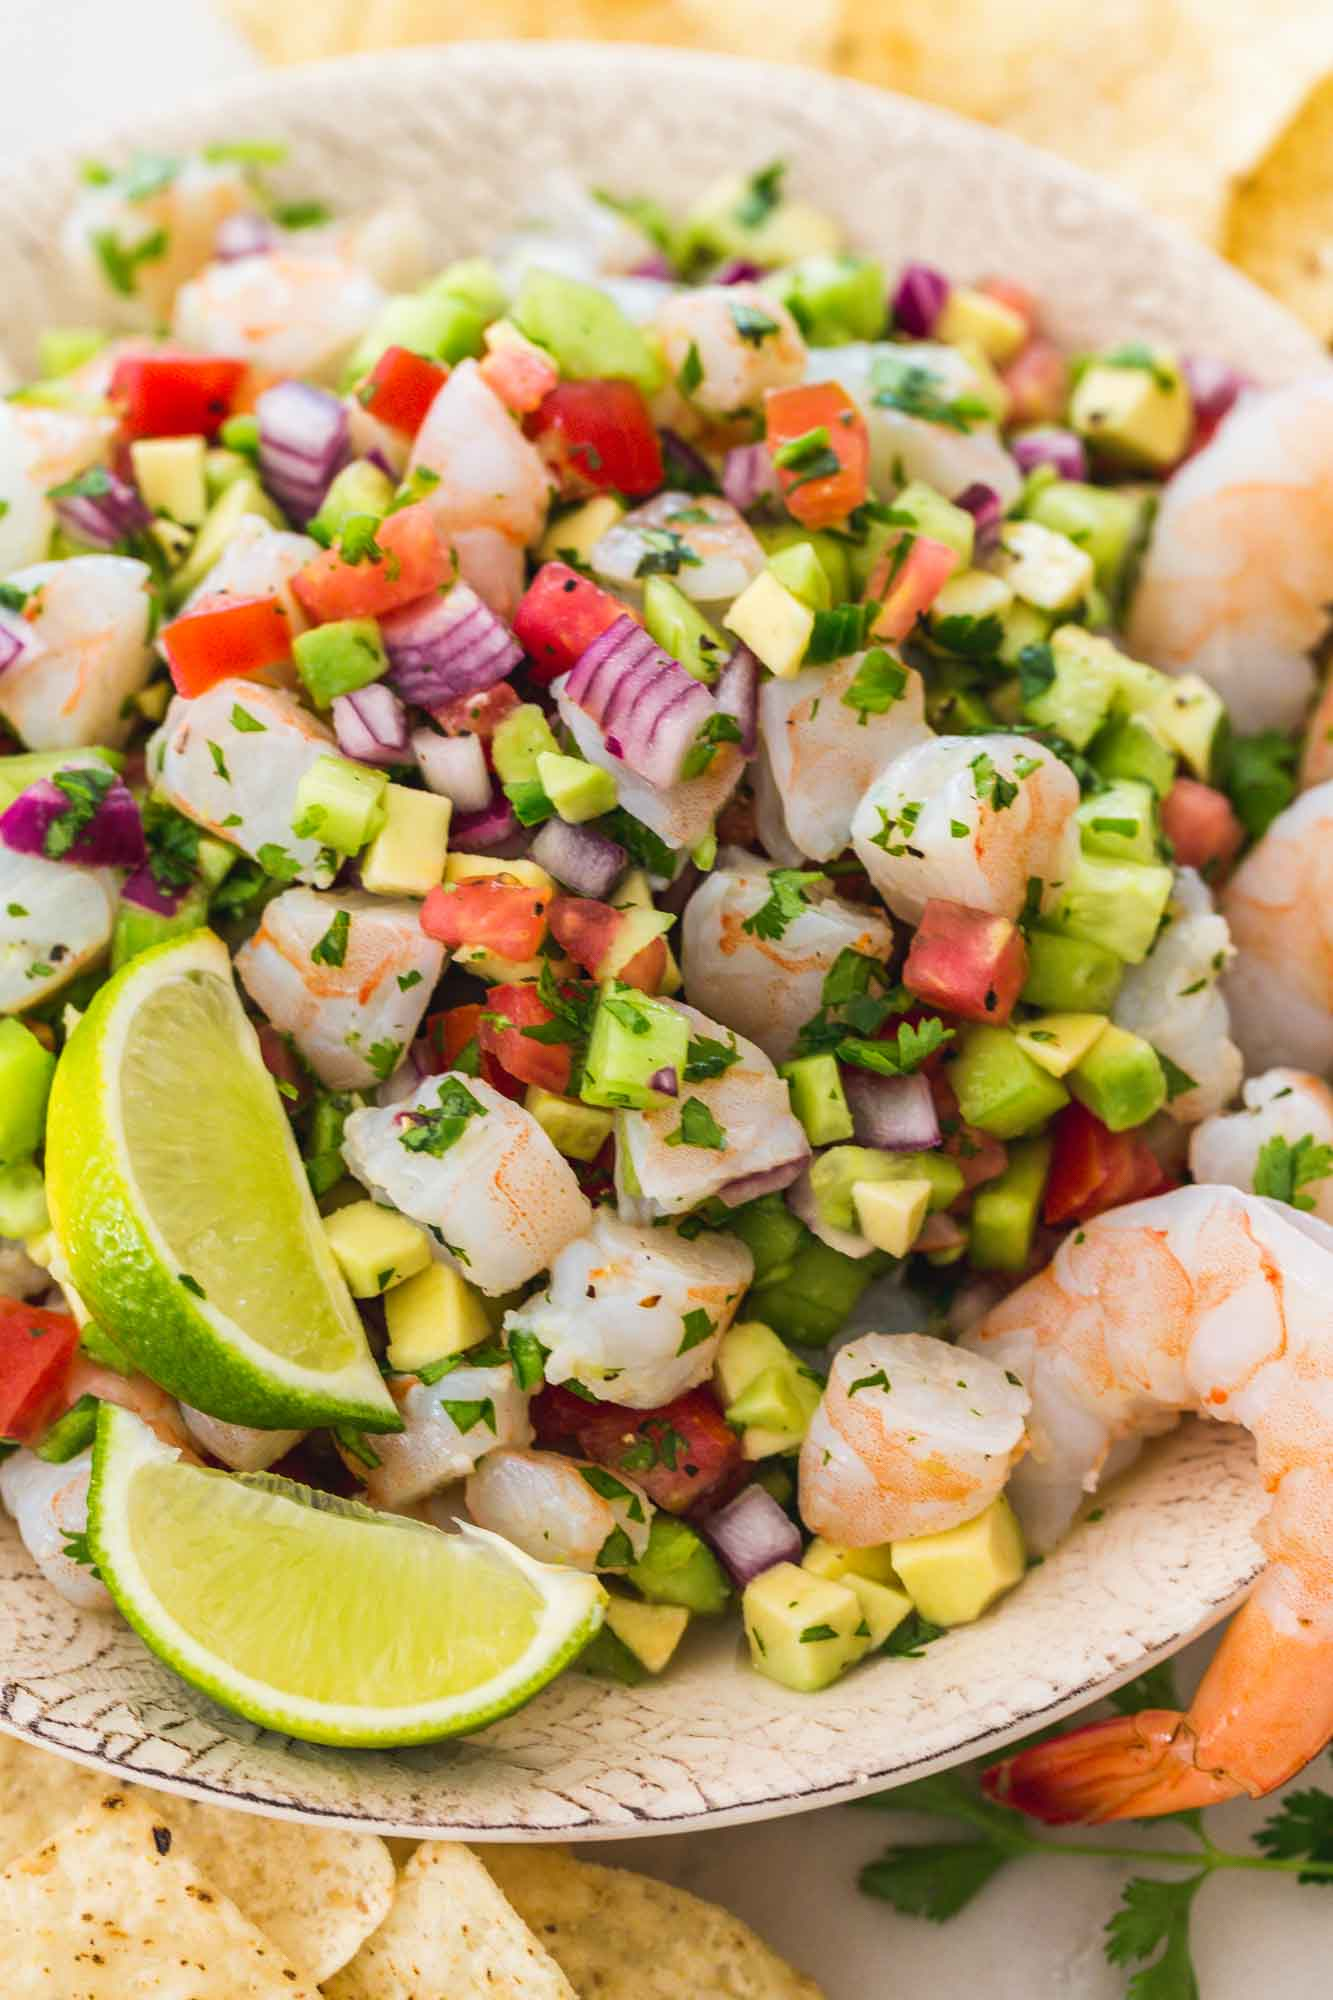 Shrimp ceviche served in a bowl with fresh lime wedges and poached shrimp